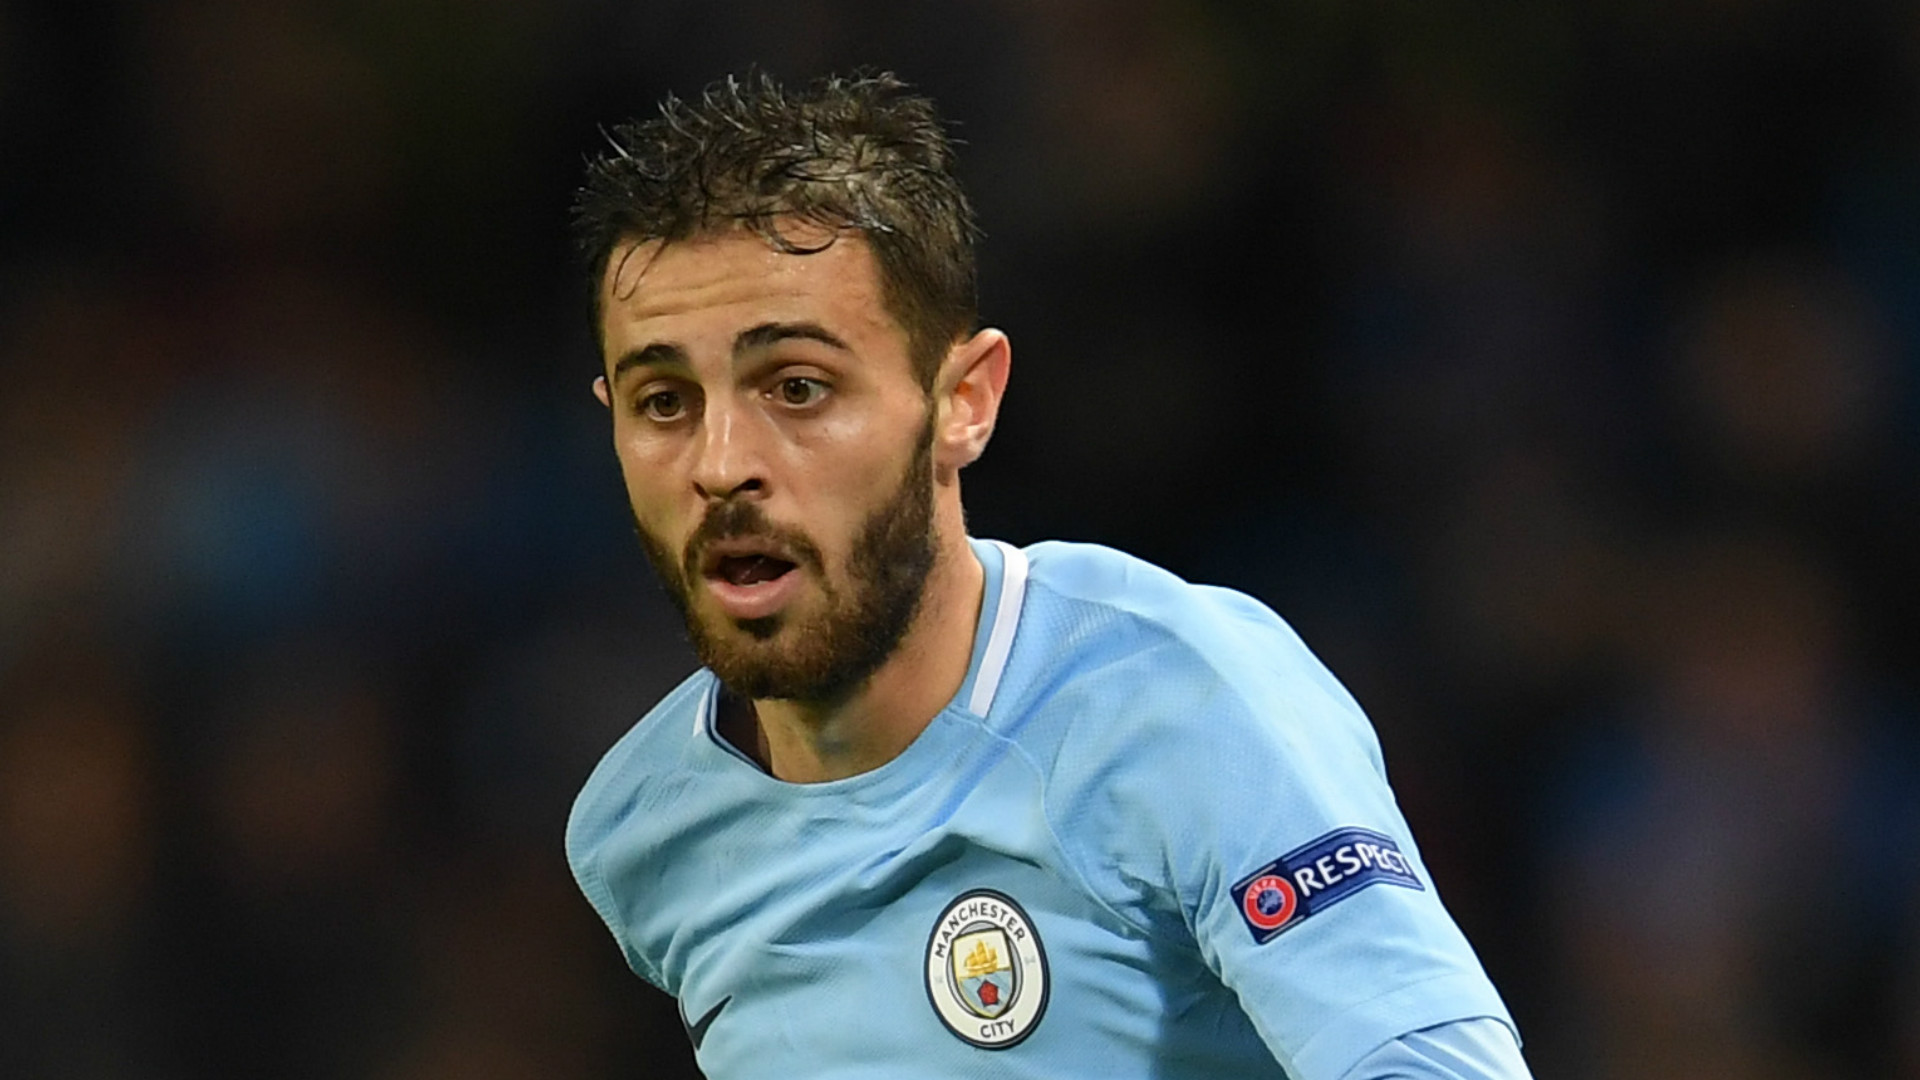 Man City boss Guardiola credits Txiki for Foden emergence